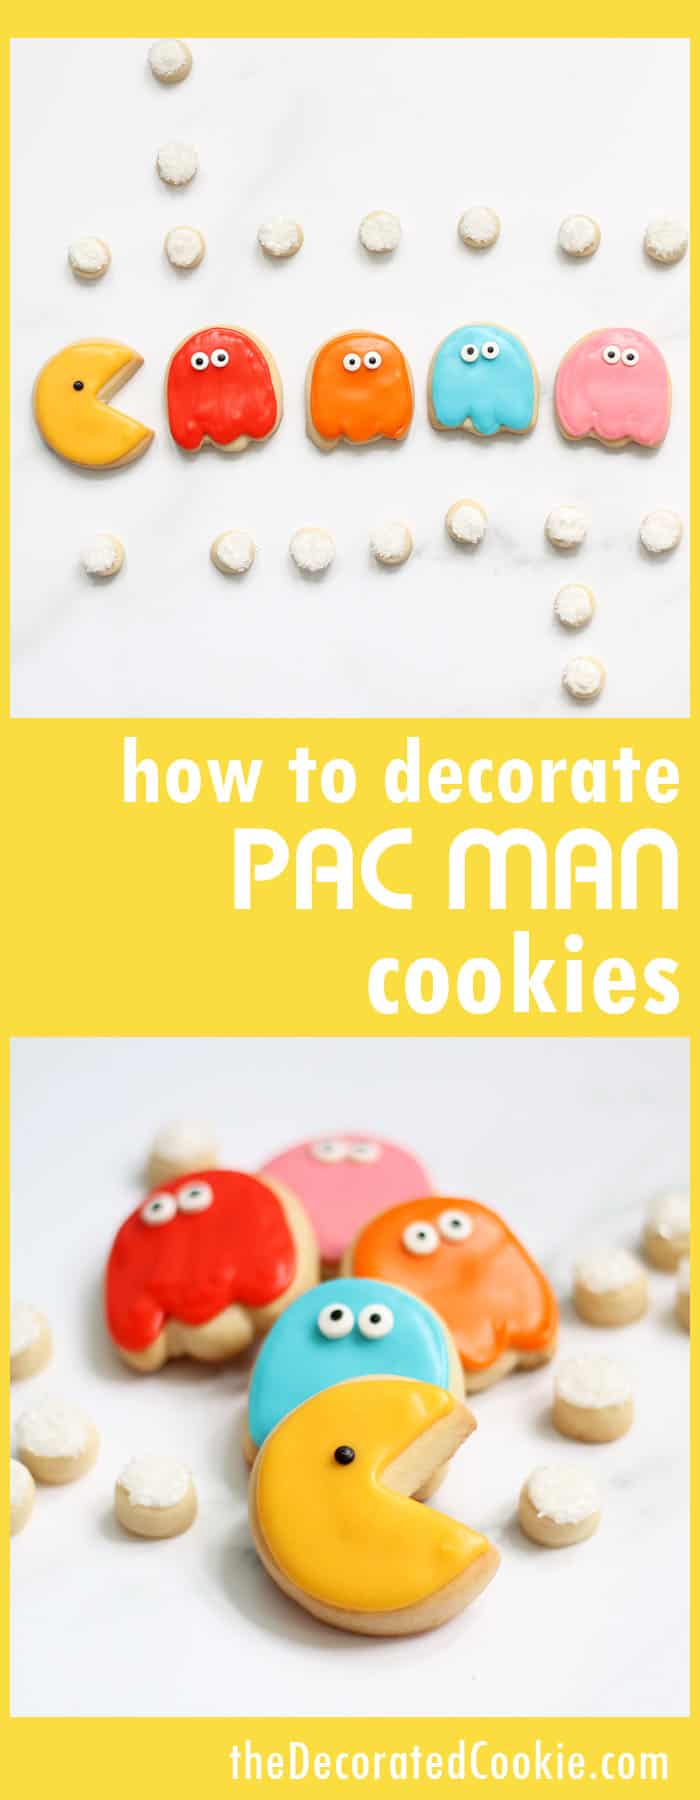 How to decorate Pac Man cookies... Fun food idea for your 1980s party. '80s video game cookies